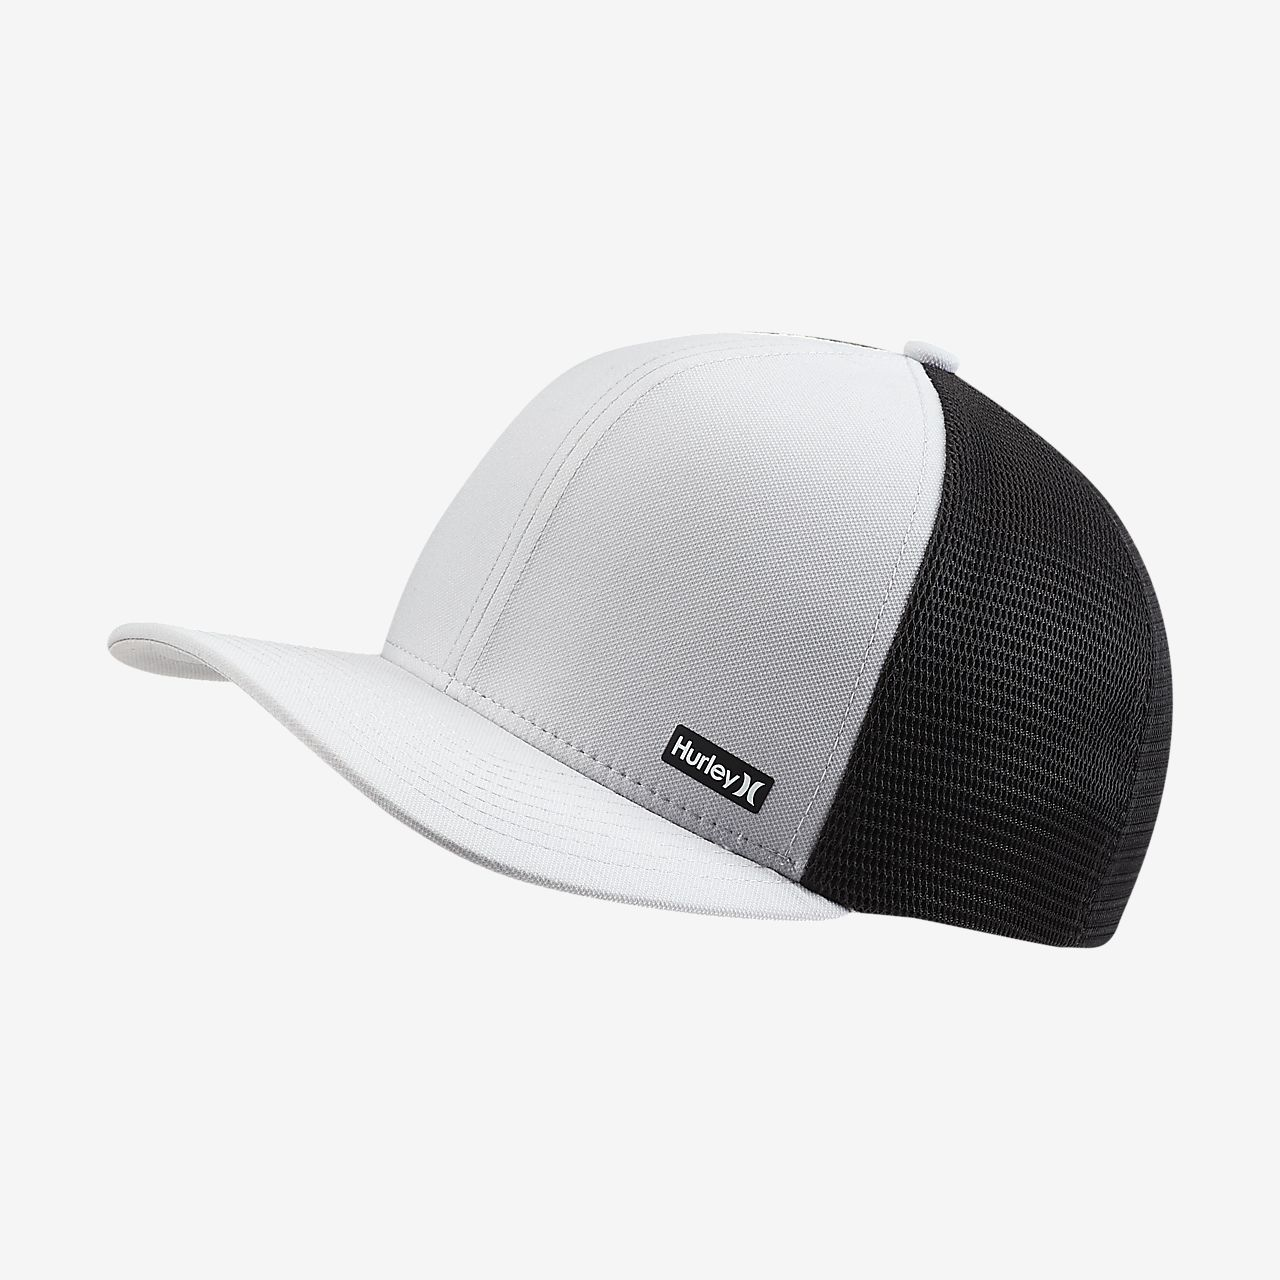 Hurley League Adjustable Hat. Nike.com 980e6d86881